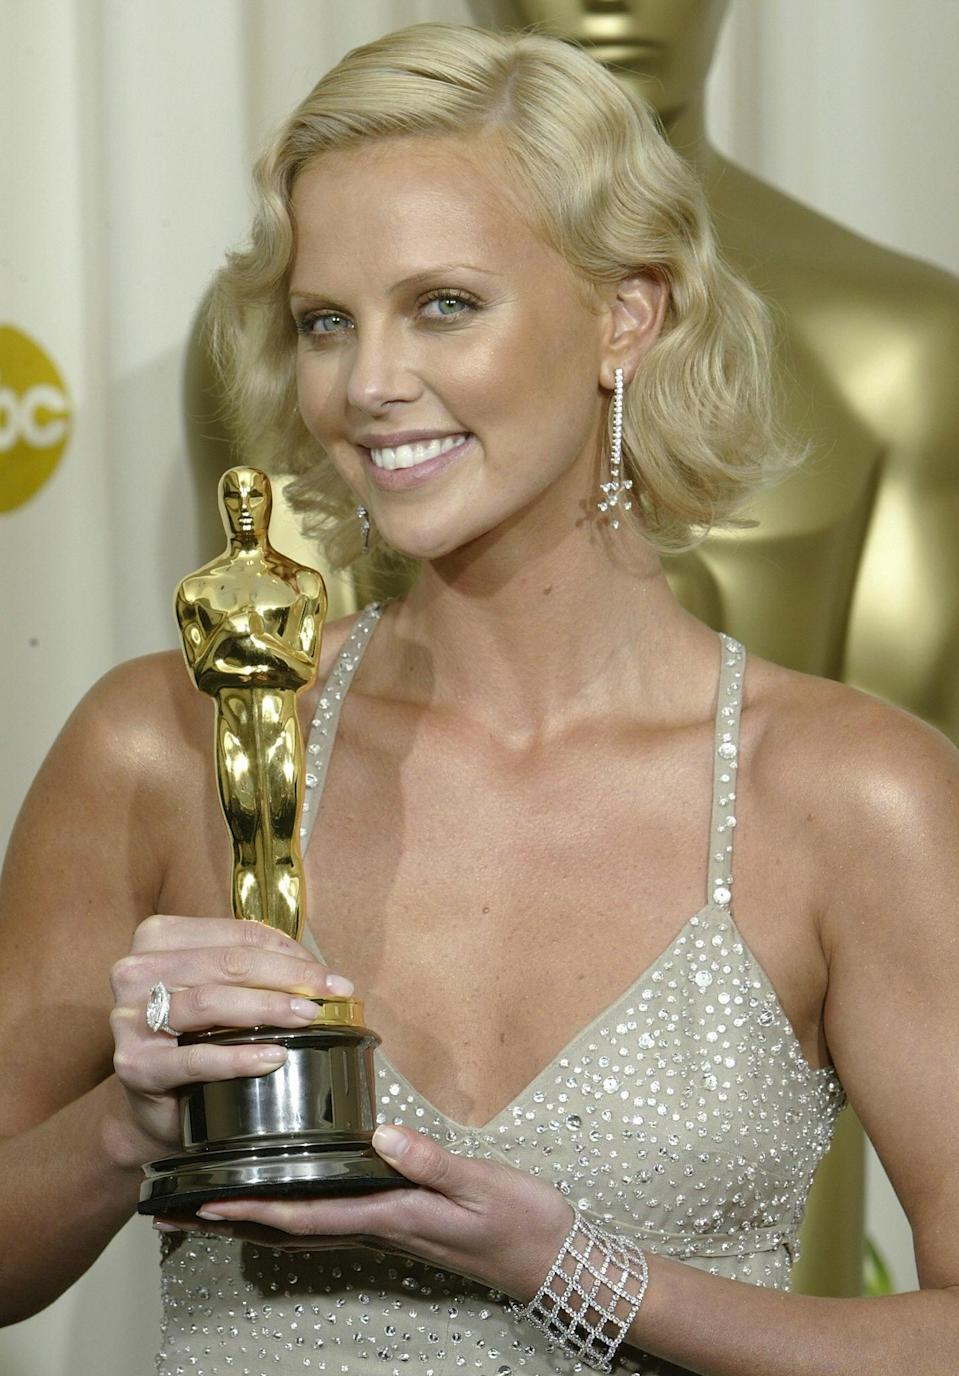 """<p><a class=""""link rapid-noclick-resp"""" href=""""https://www.popsugar.com/Charlize-Theron"""" rel=""""nofollow noopener"""" target=""""_blank"""" data-ylk=""""slk:Charlize Theron"""">Charlize Theron</a> styled her bob haircut into fingerwaves at the Oscars in 2004. </p>"""